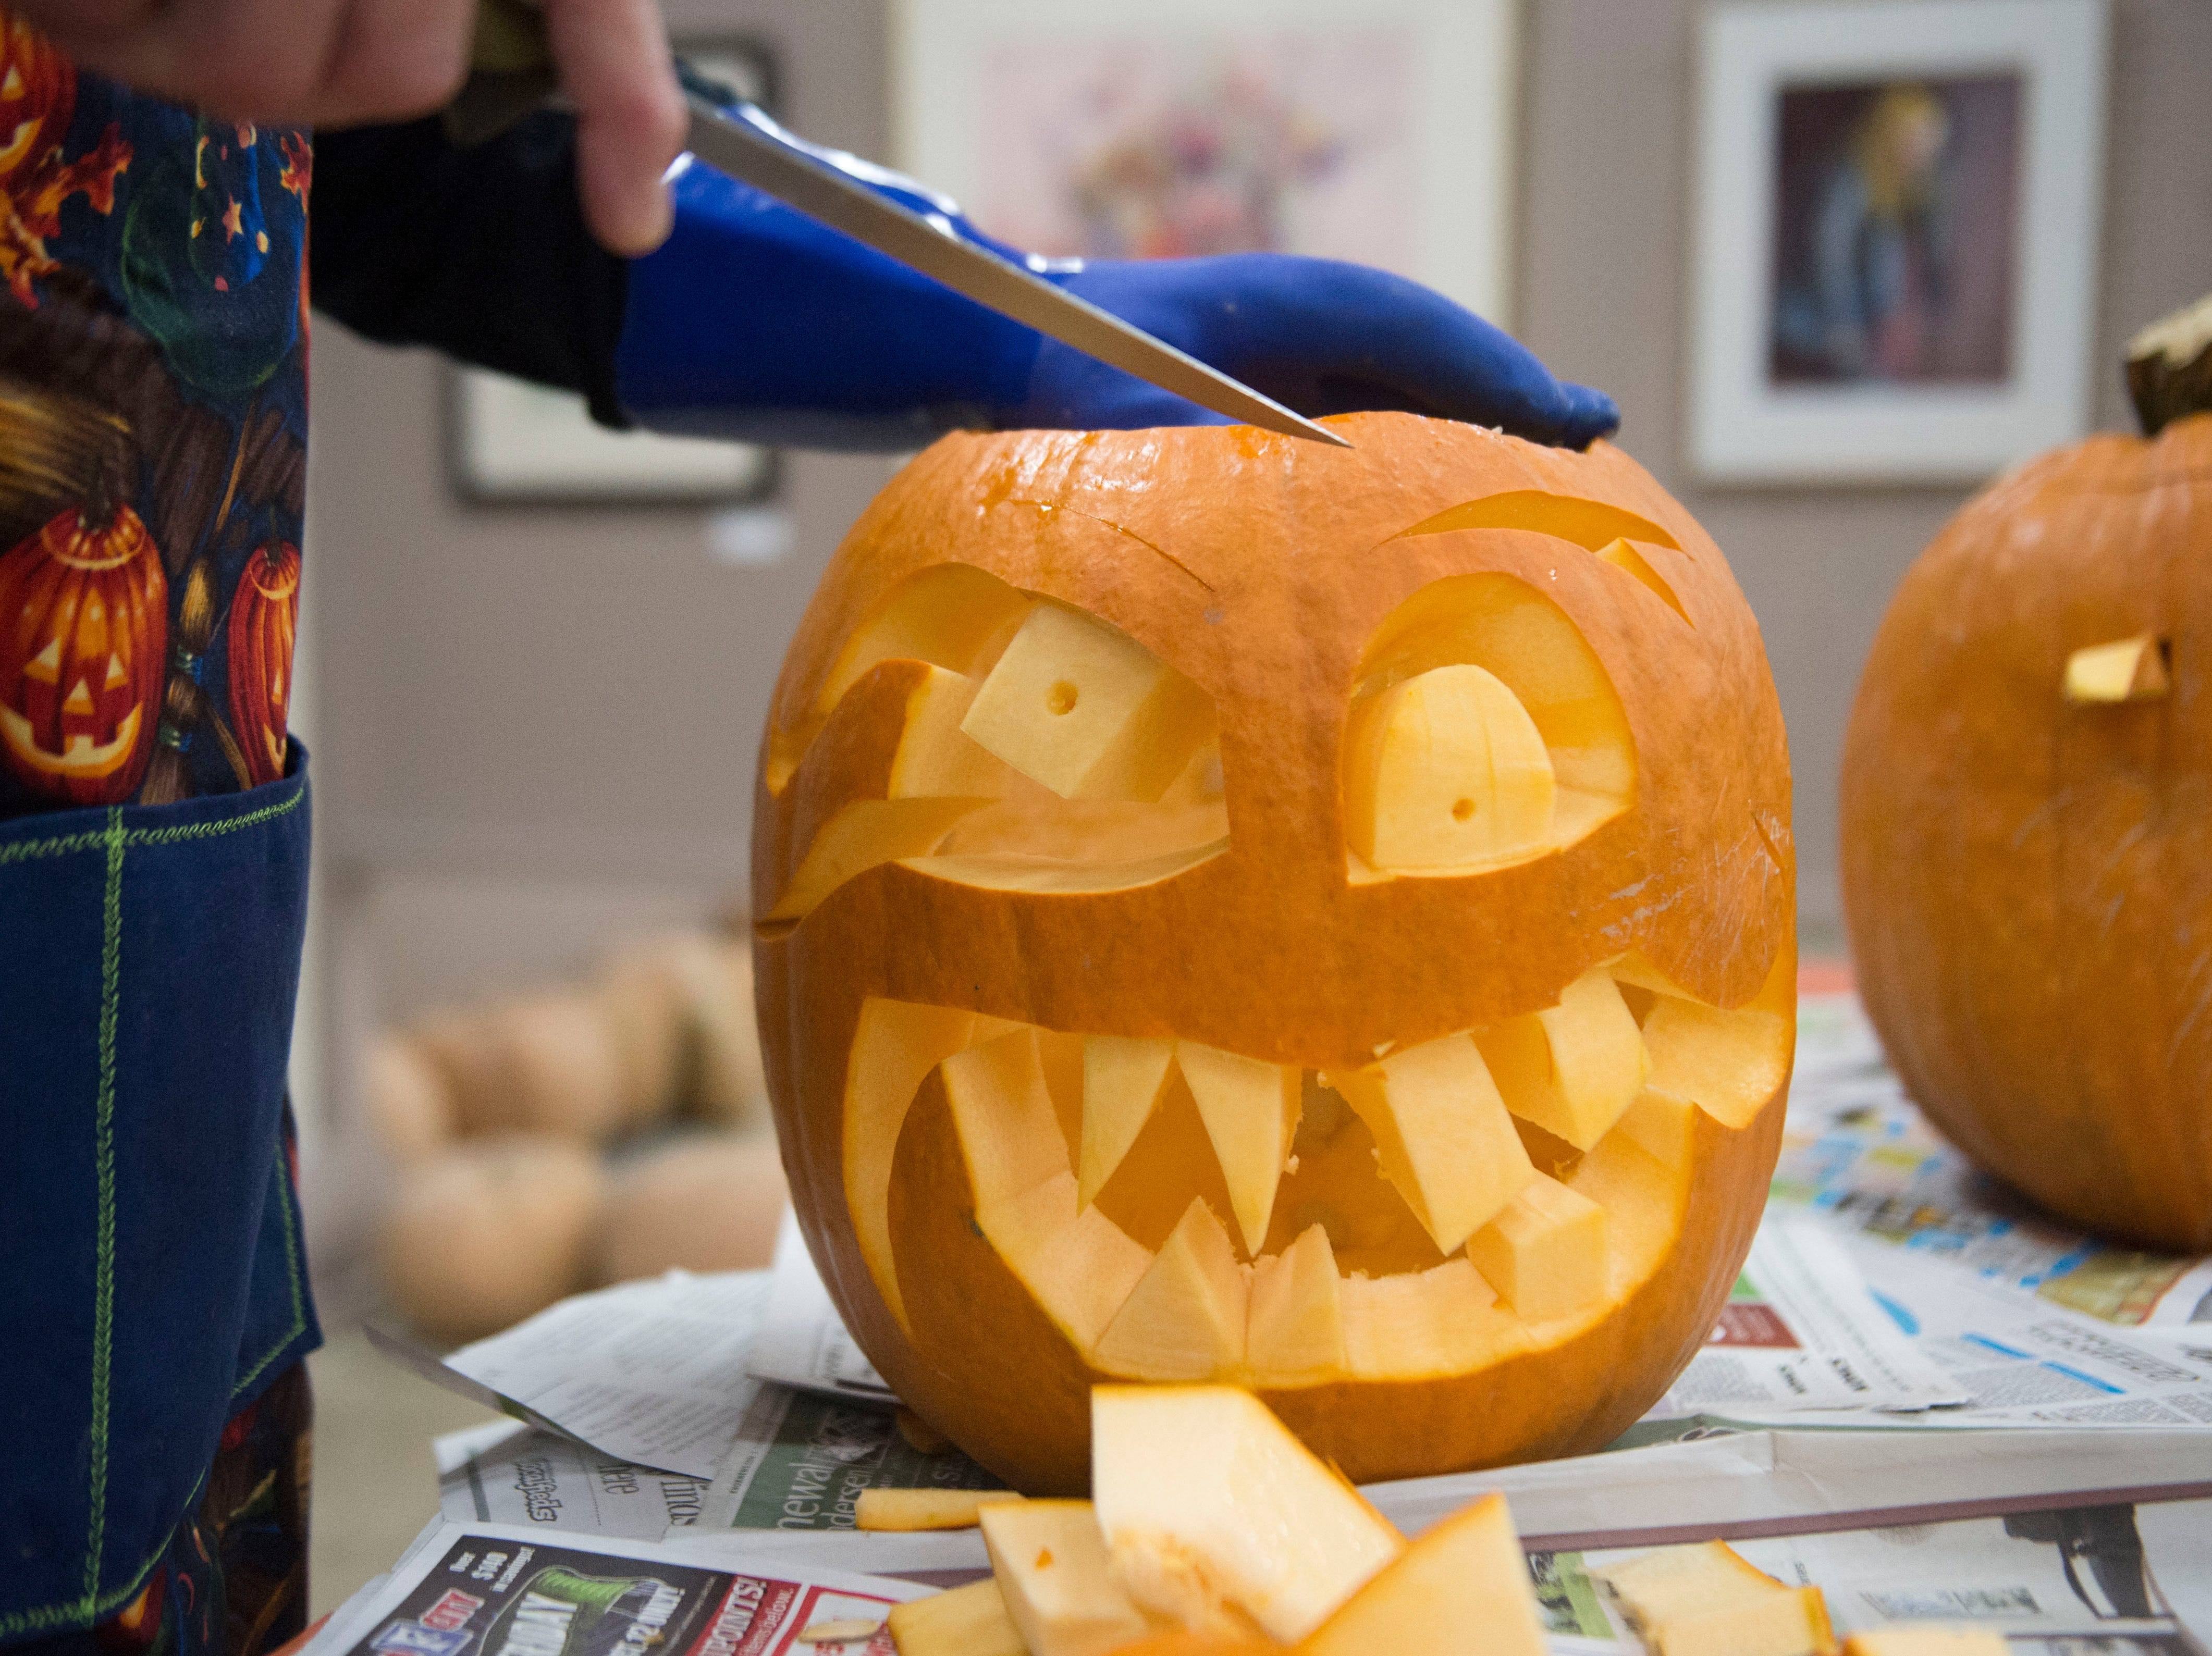 Artist Ken Clayton, also known as Dr. Carvinstein, carves a pumpkin at the Fountain City Art Center on Oct. 16, 2018. Clayton has been carving for over 50 years.